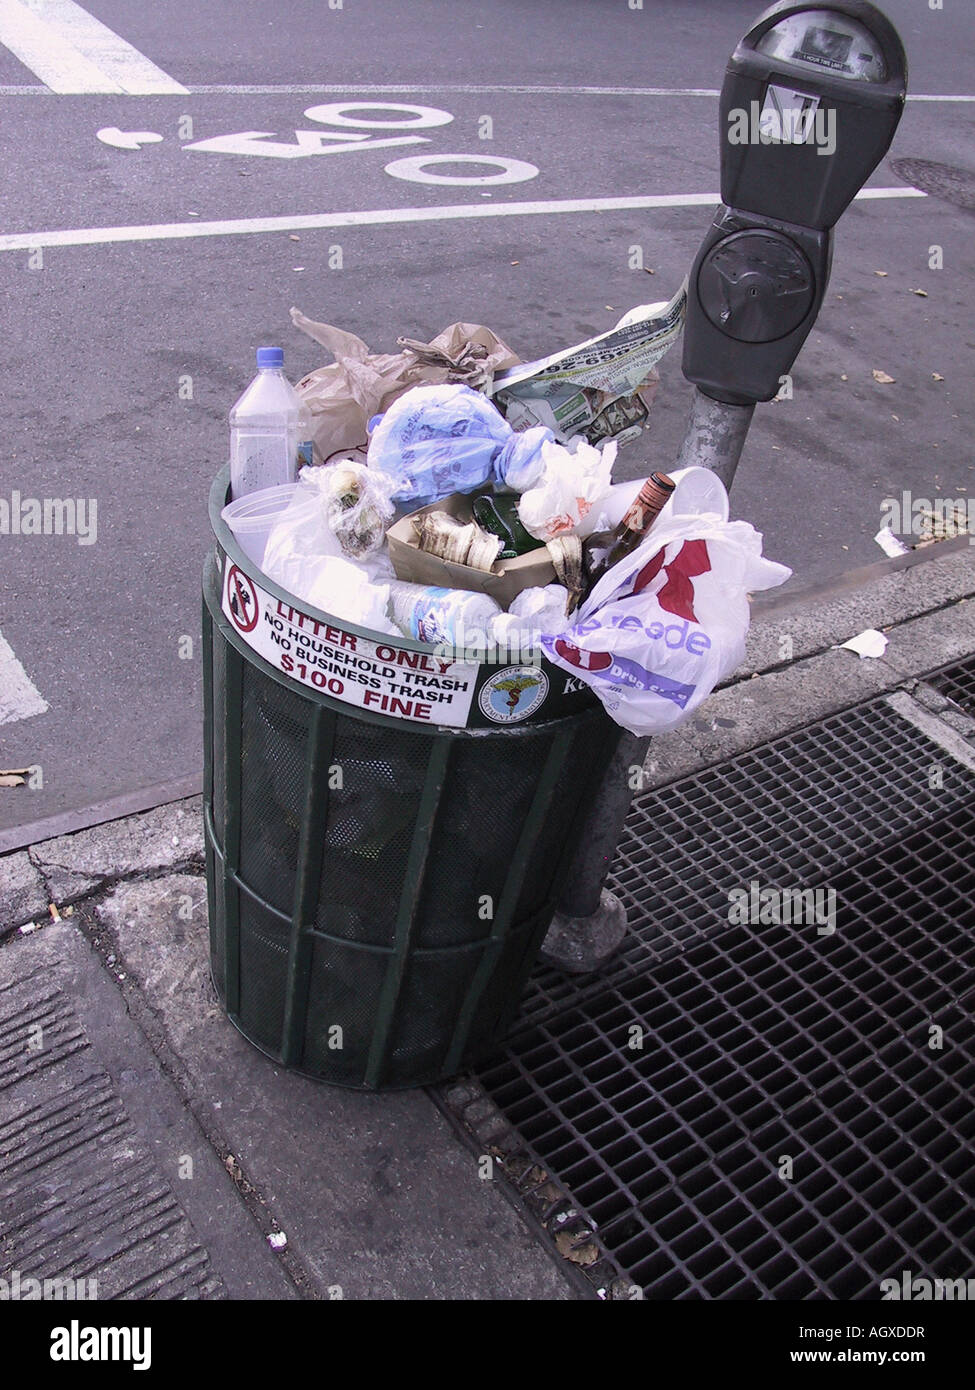 Trash can full, overflowing on the sidewalk in New York City